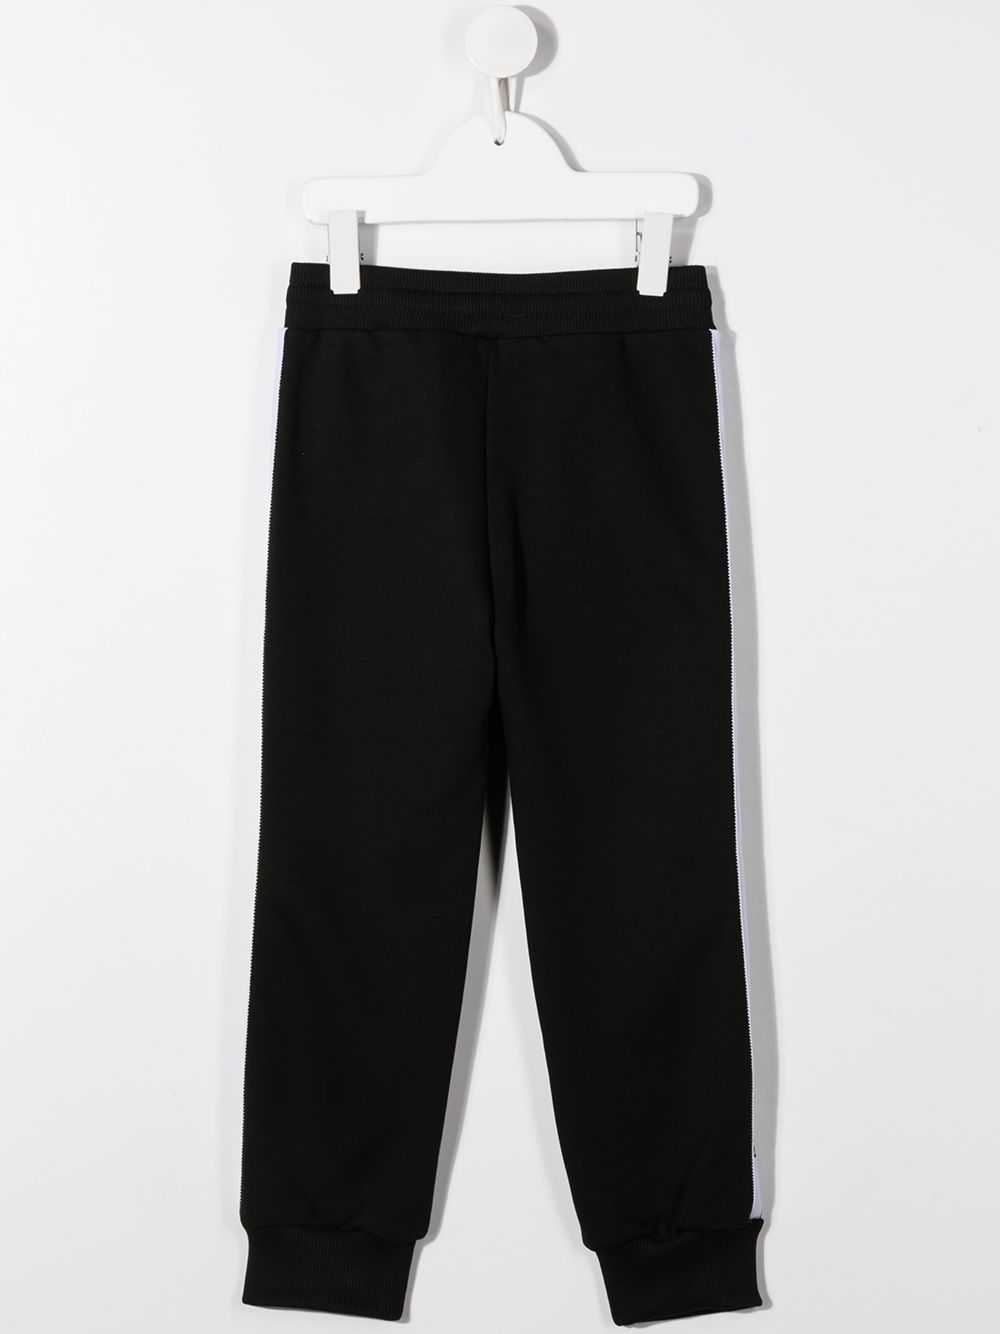 GIVENCHY KIDS Logo Tape Sweatpants Black/White - Maison De Fashion